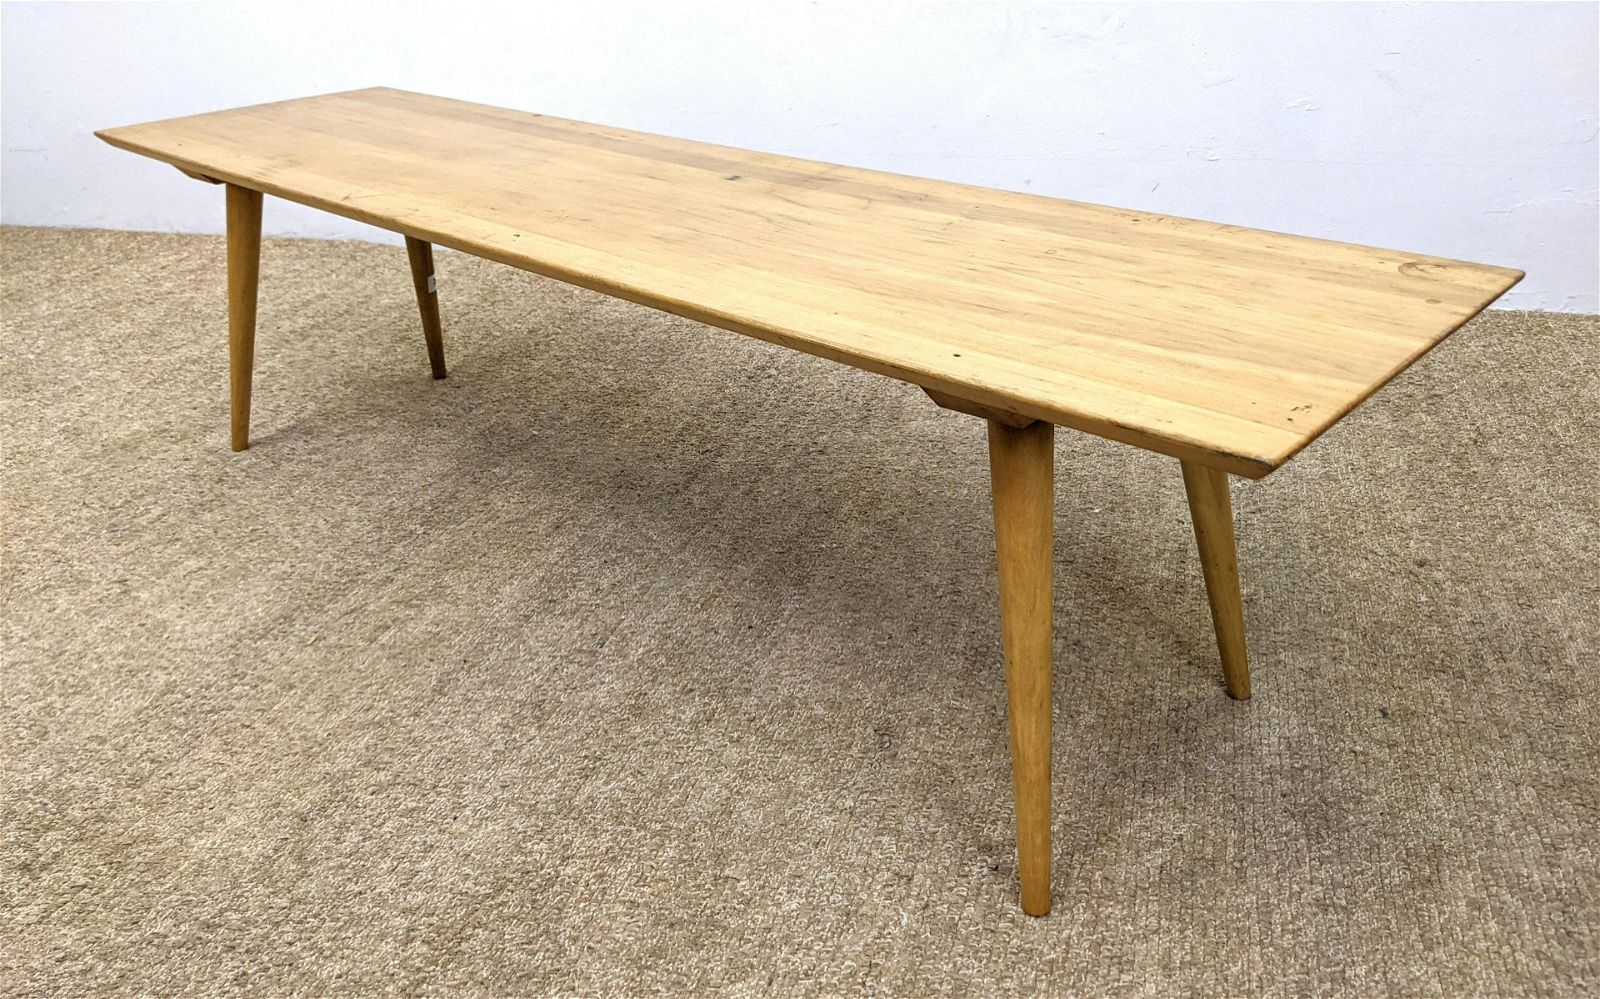 PAUL McCOBB Coffee Table Bench. Blond Wood Coffee Table